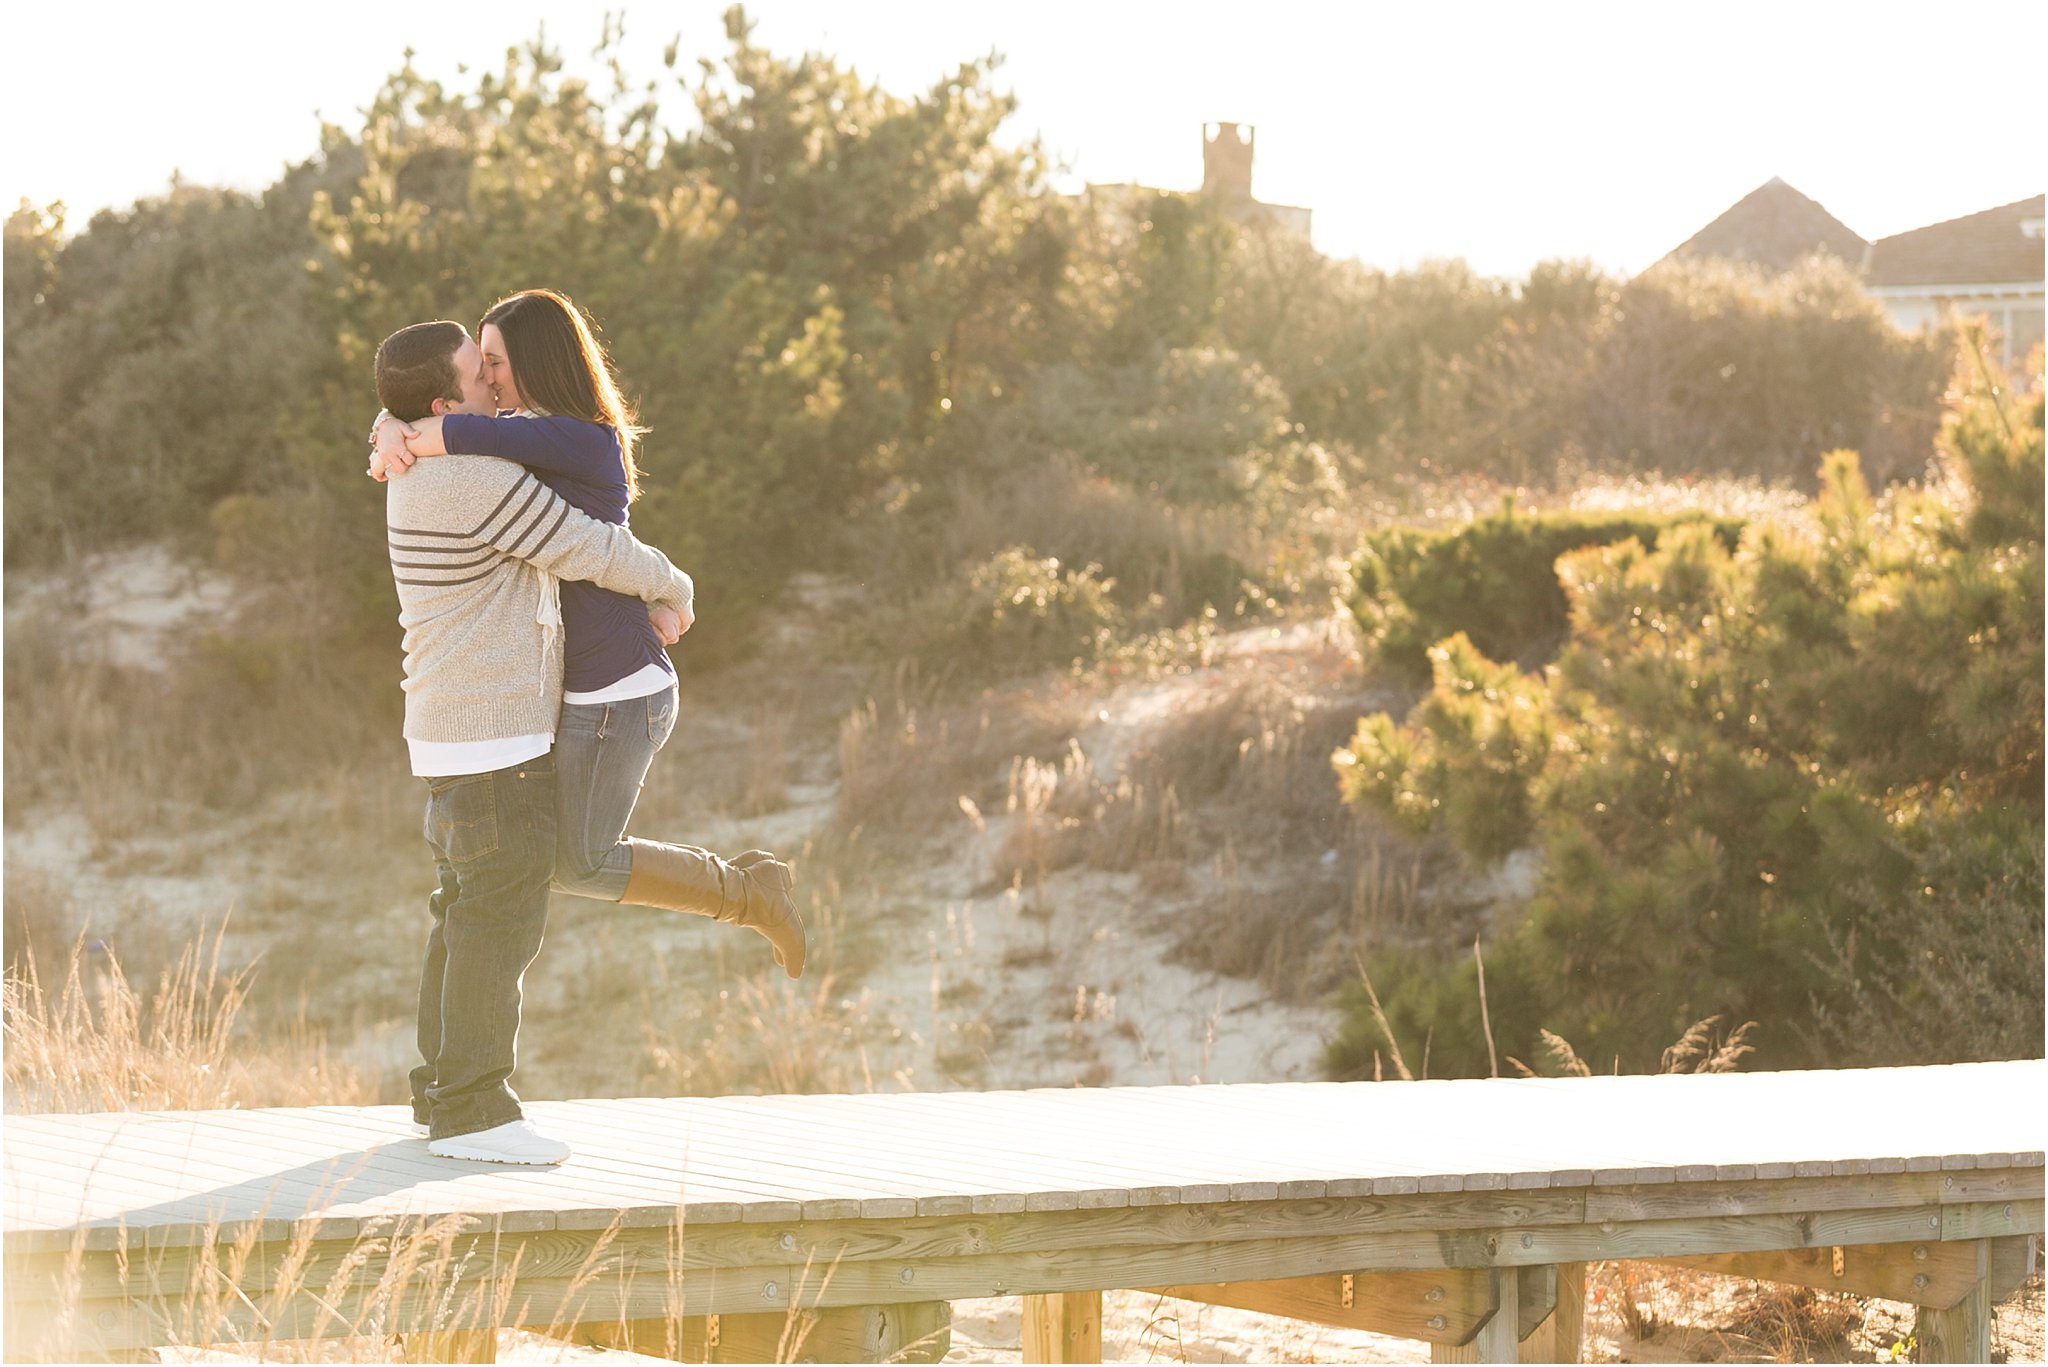 jessica_ryan_photography_winter_engagements_virginia_beach_oceanfront_virginia_0744